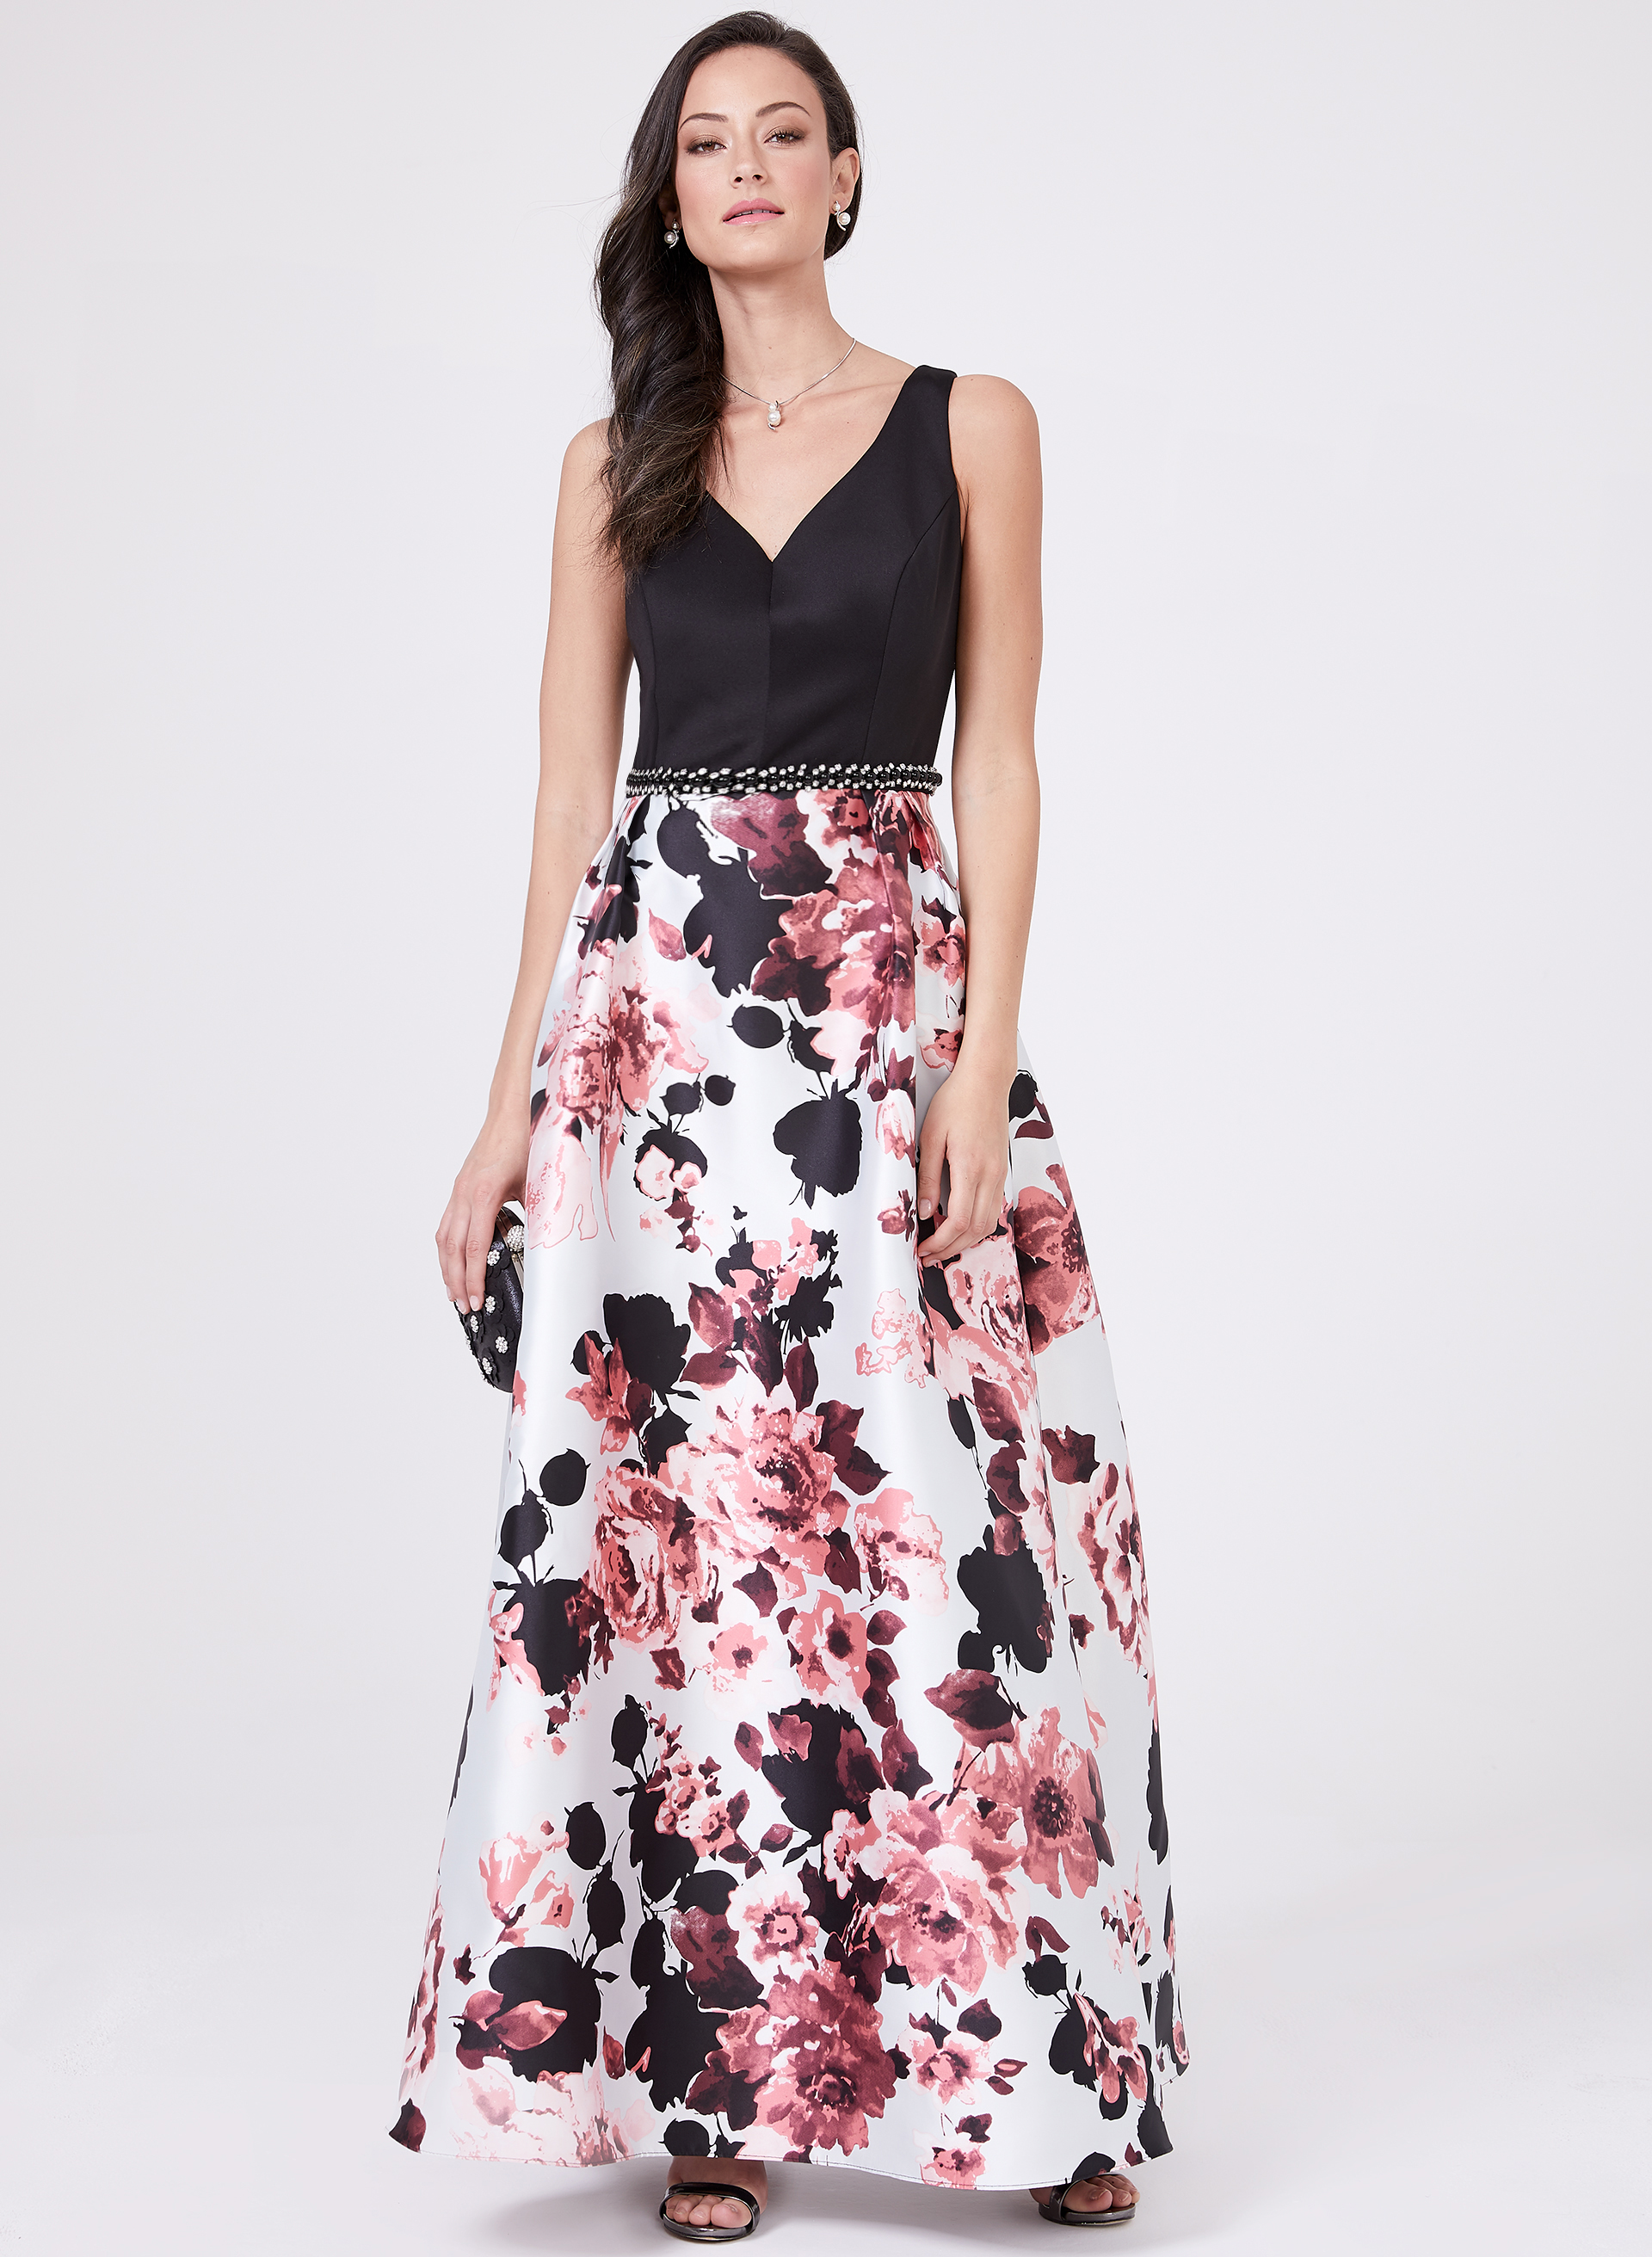 Ignite Evenings – Floral Print Ball Gown | Melanie Lyne